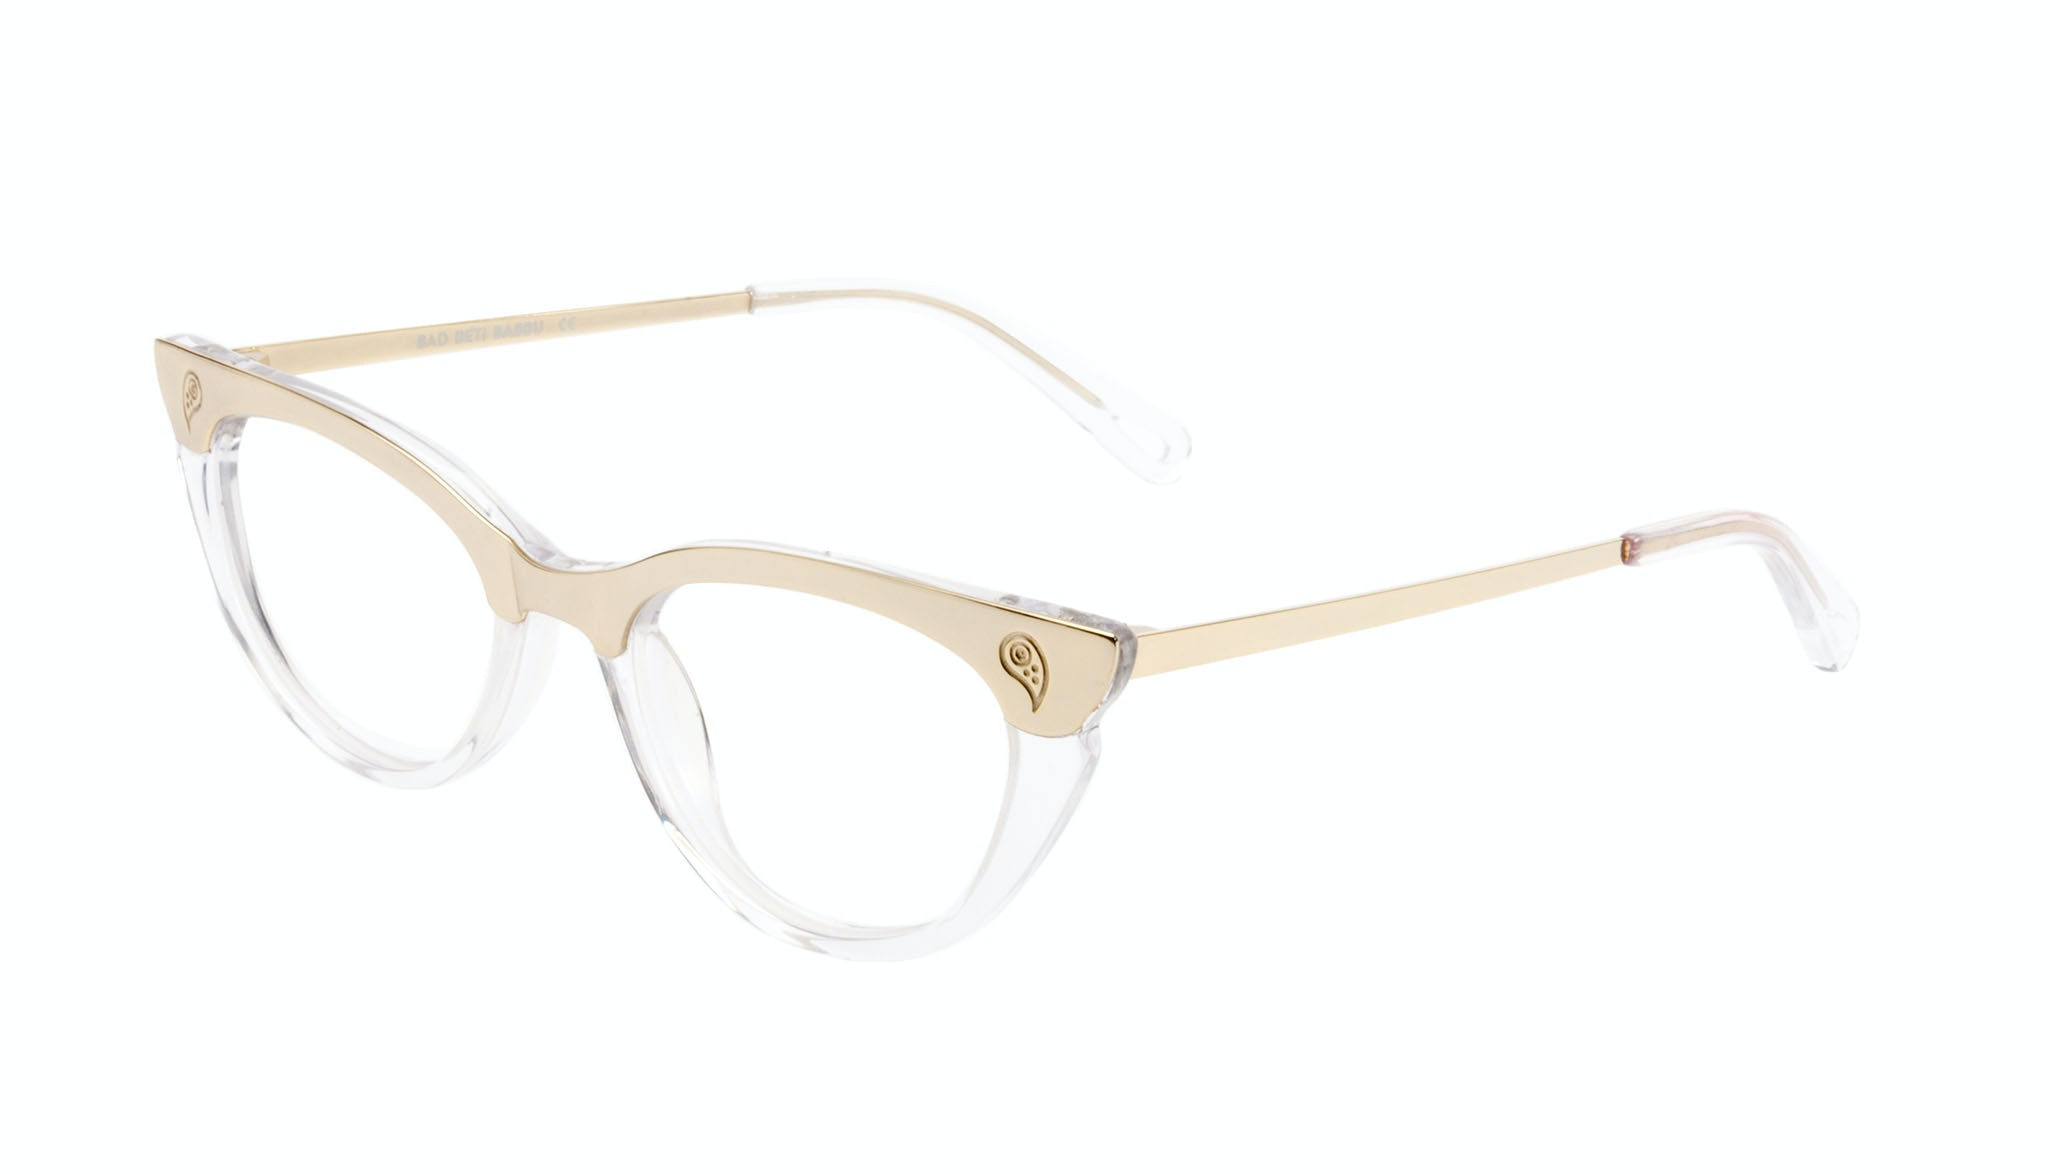 Affordable Fashion Glasses Cat Eye Daring Cateye Eyeglasses Women Bad Beti Babbu Tilt